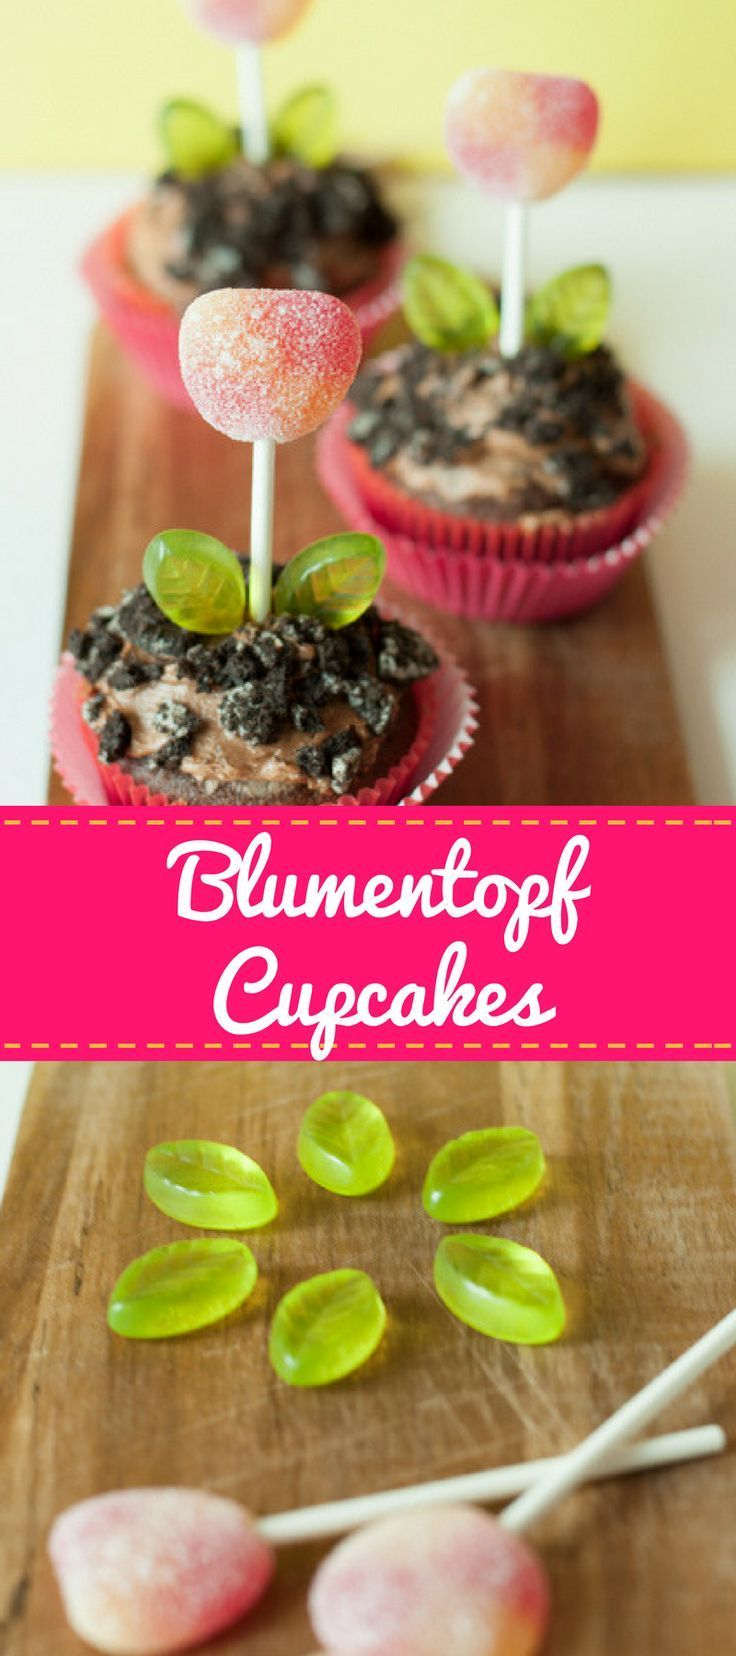 Chocolate flowerpot cupcakes for spring